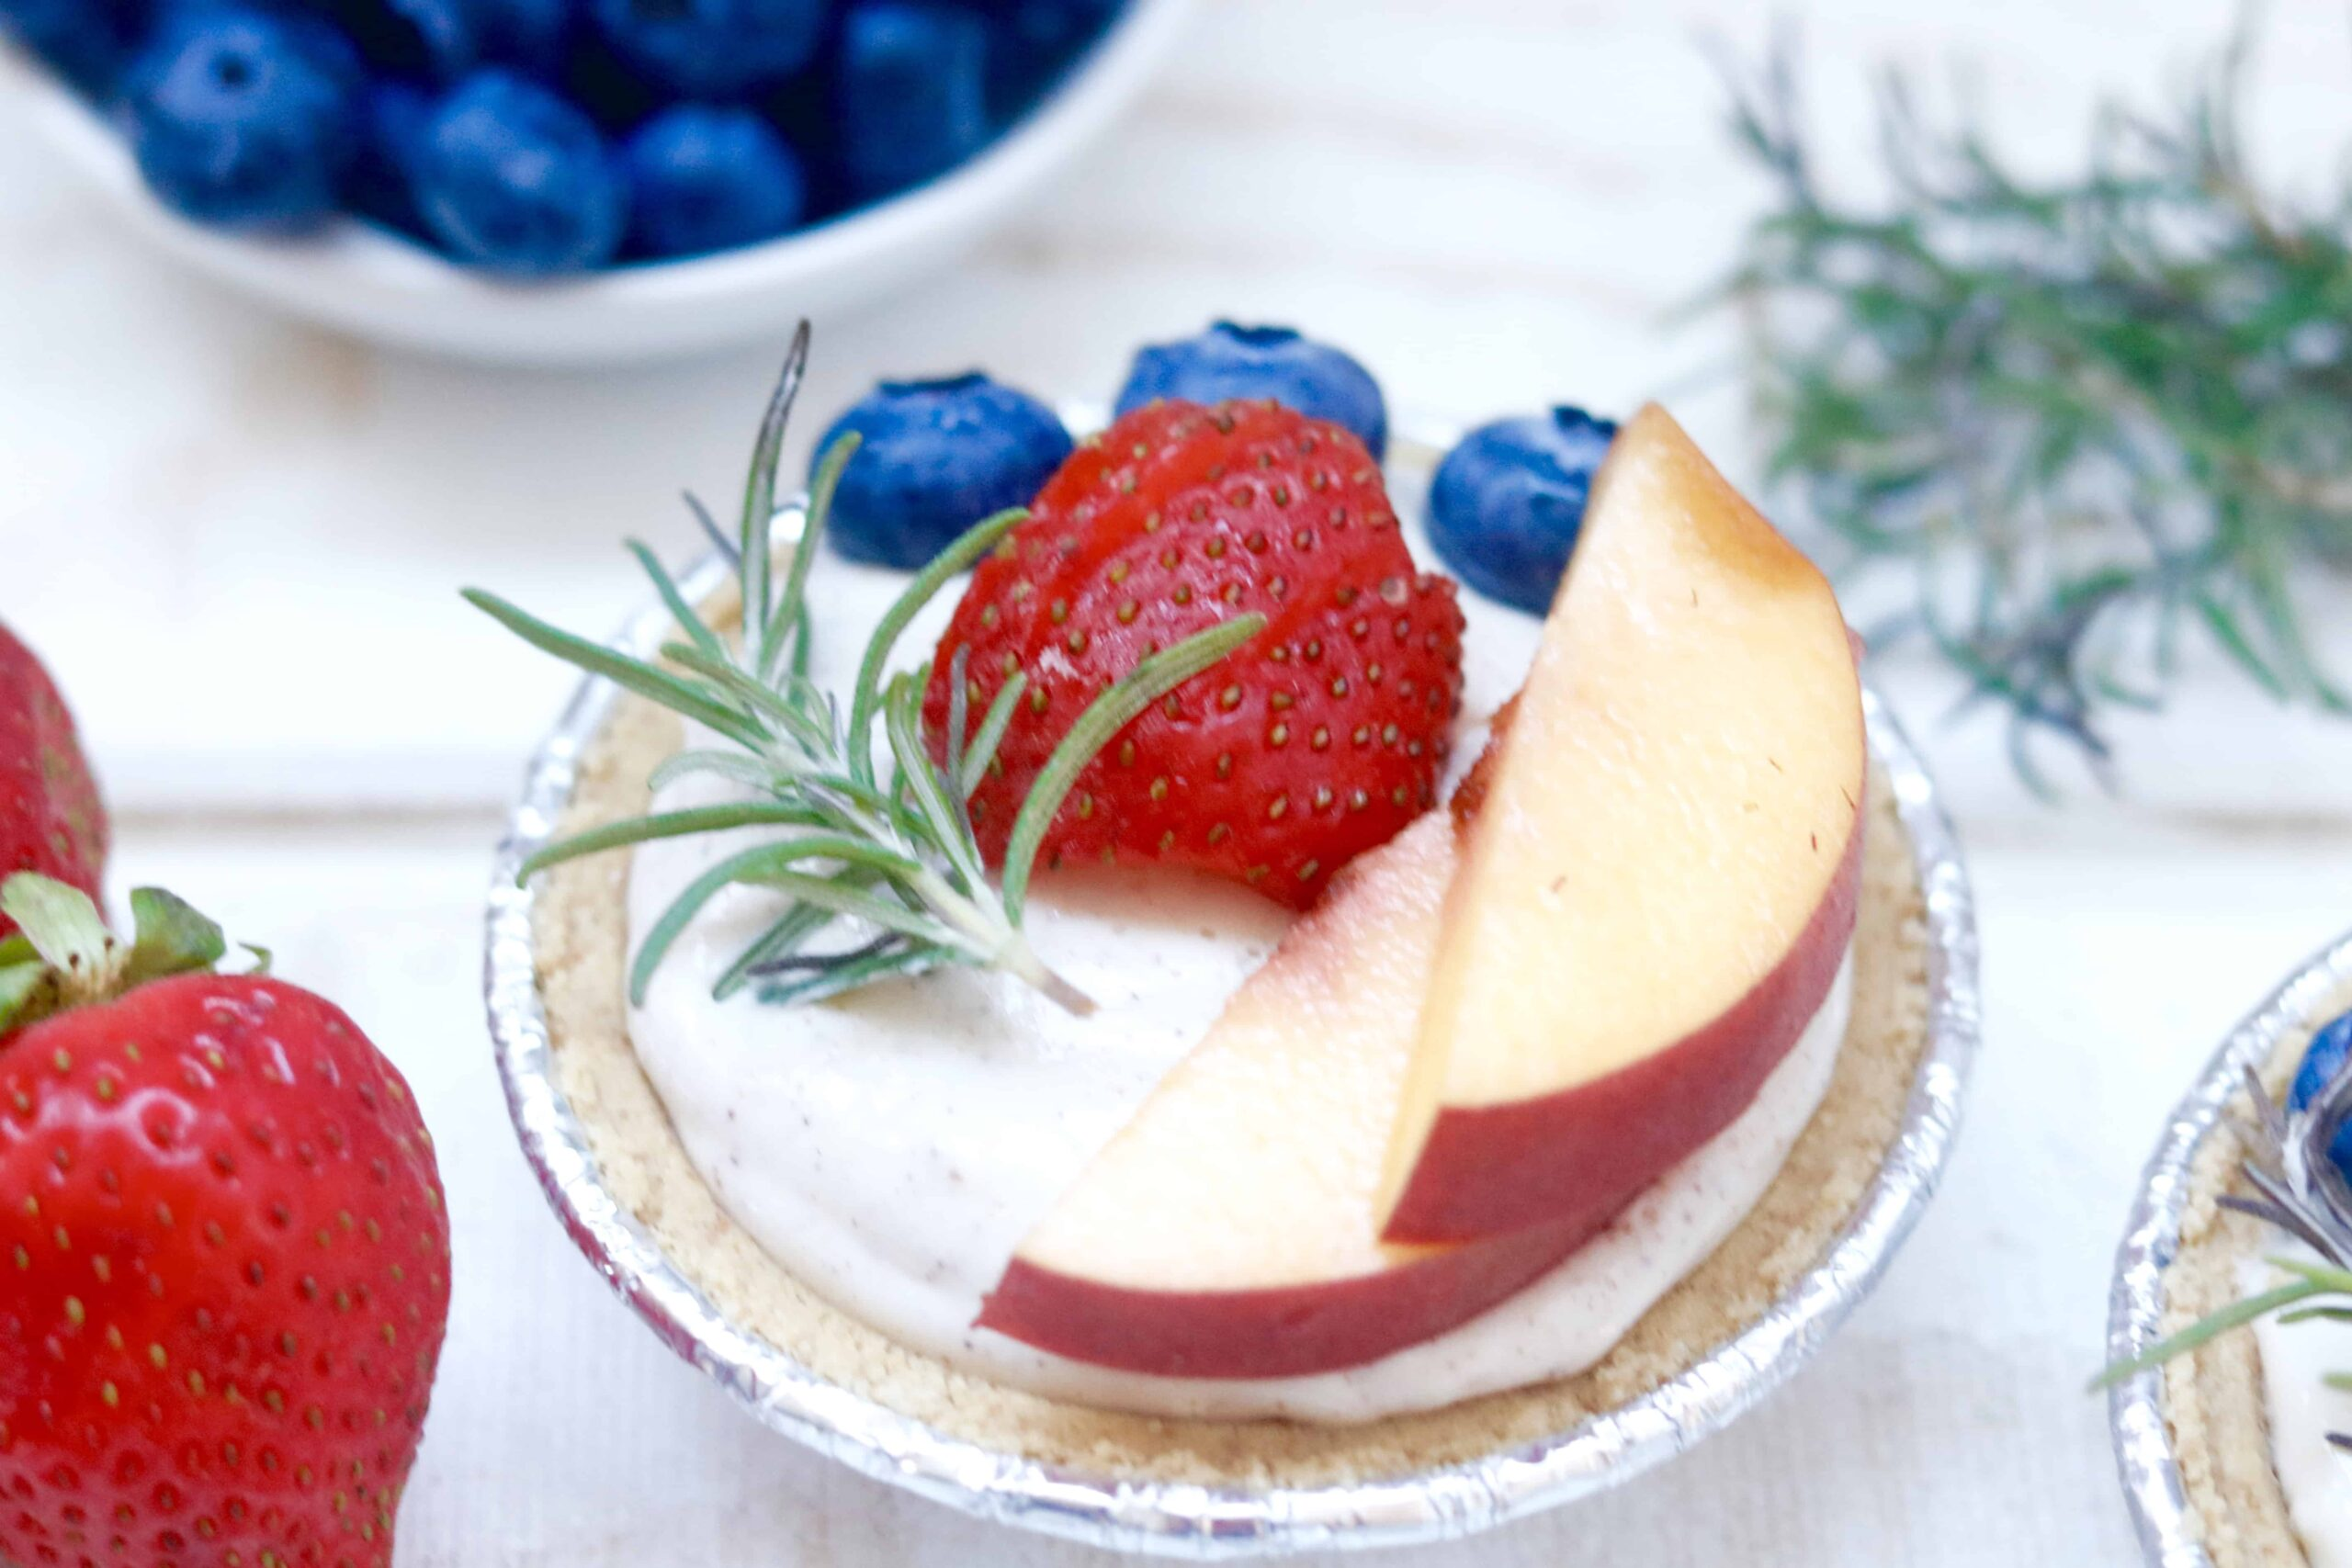 No Bake Cheesecake with Fresh Berries - Ready in 10 Minutes Flat! @shawsimpleswaps